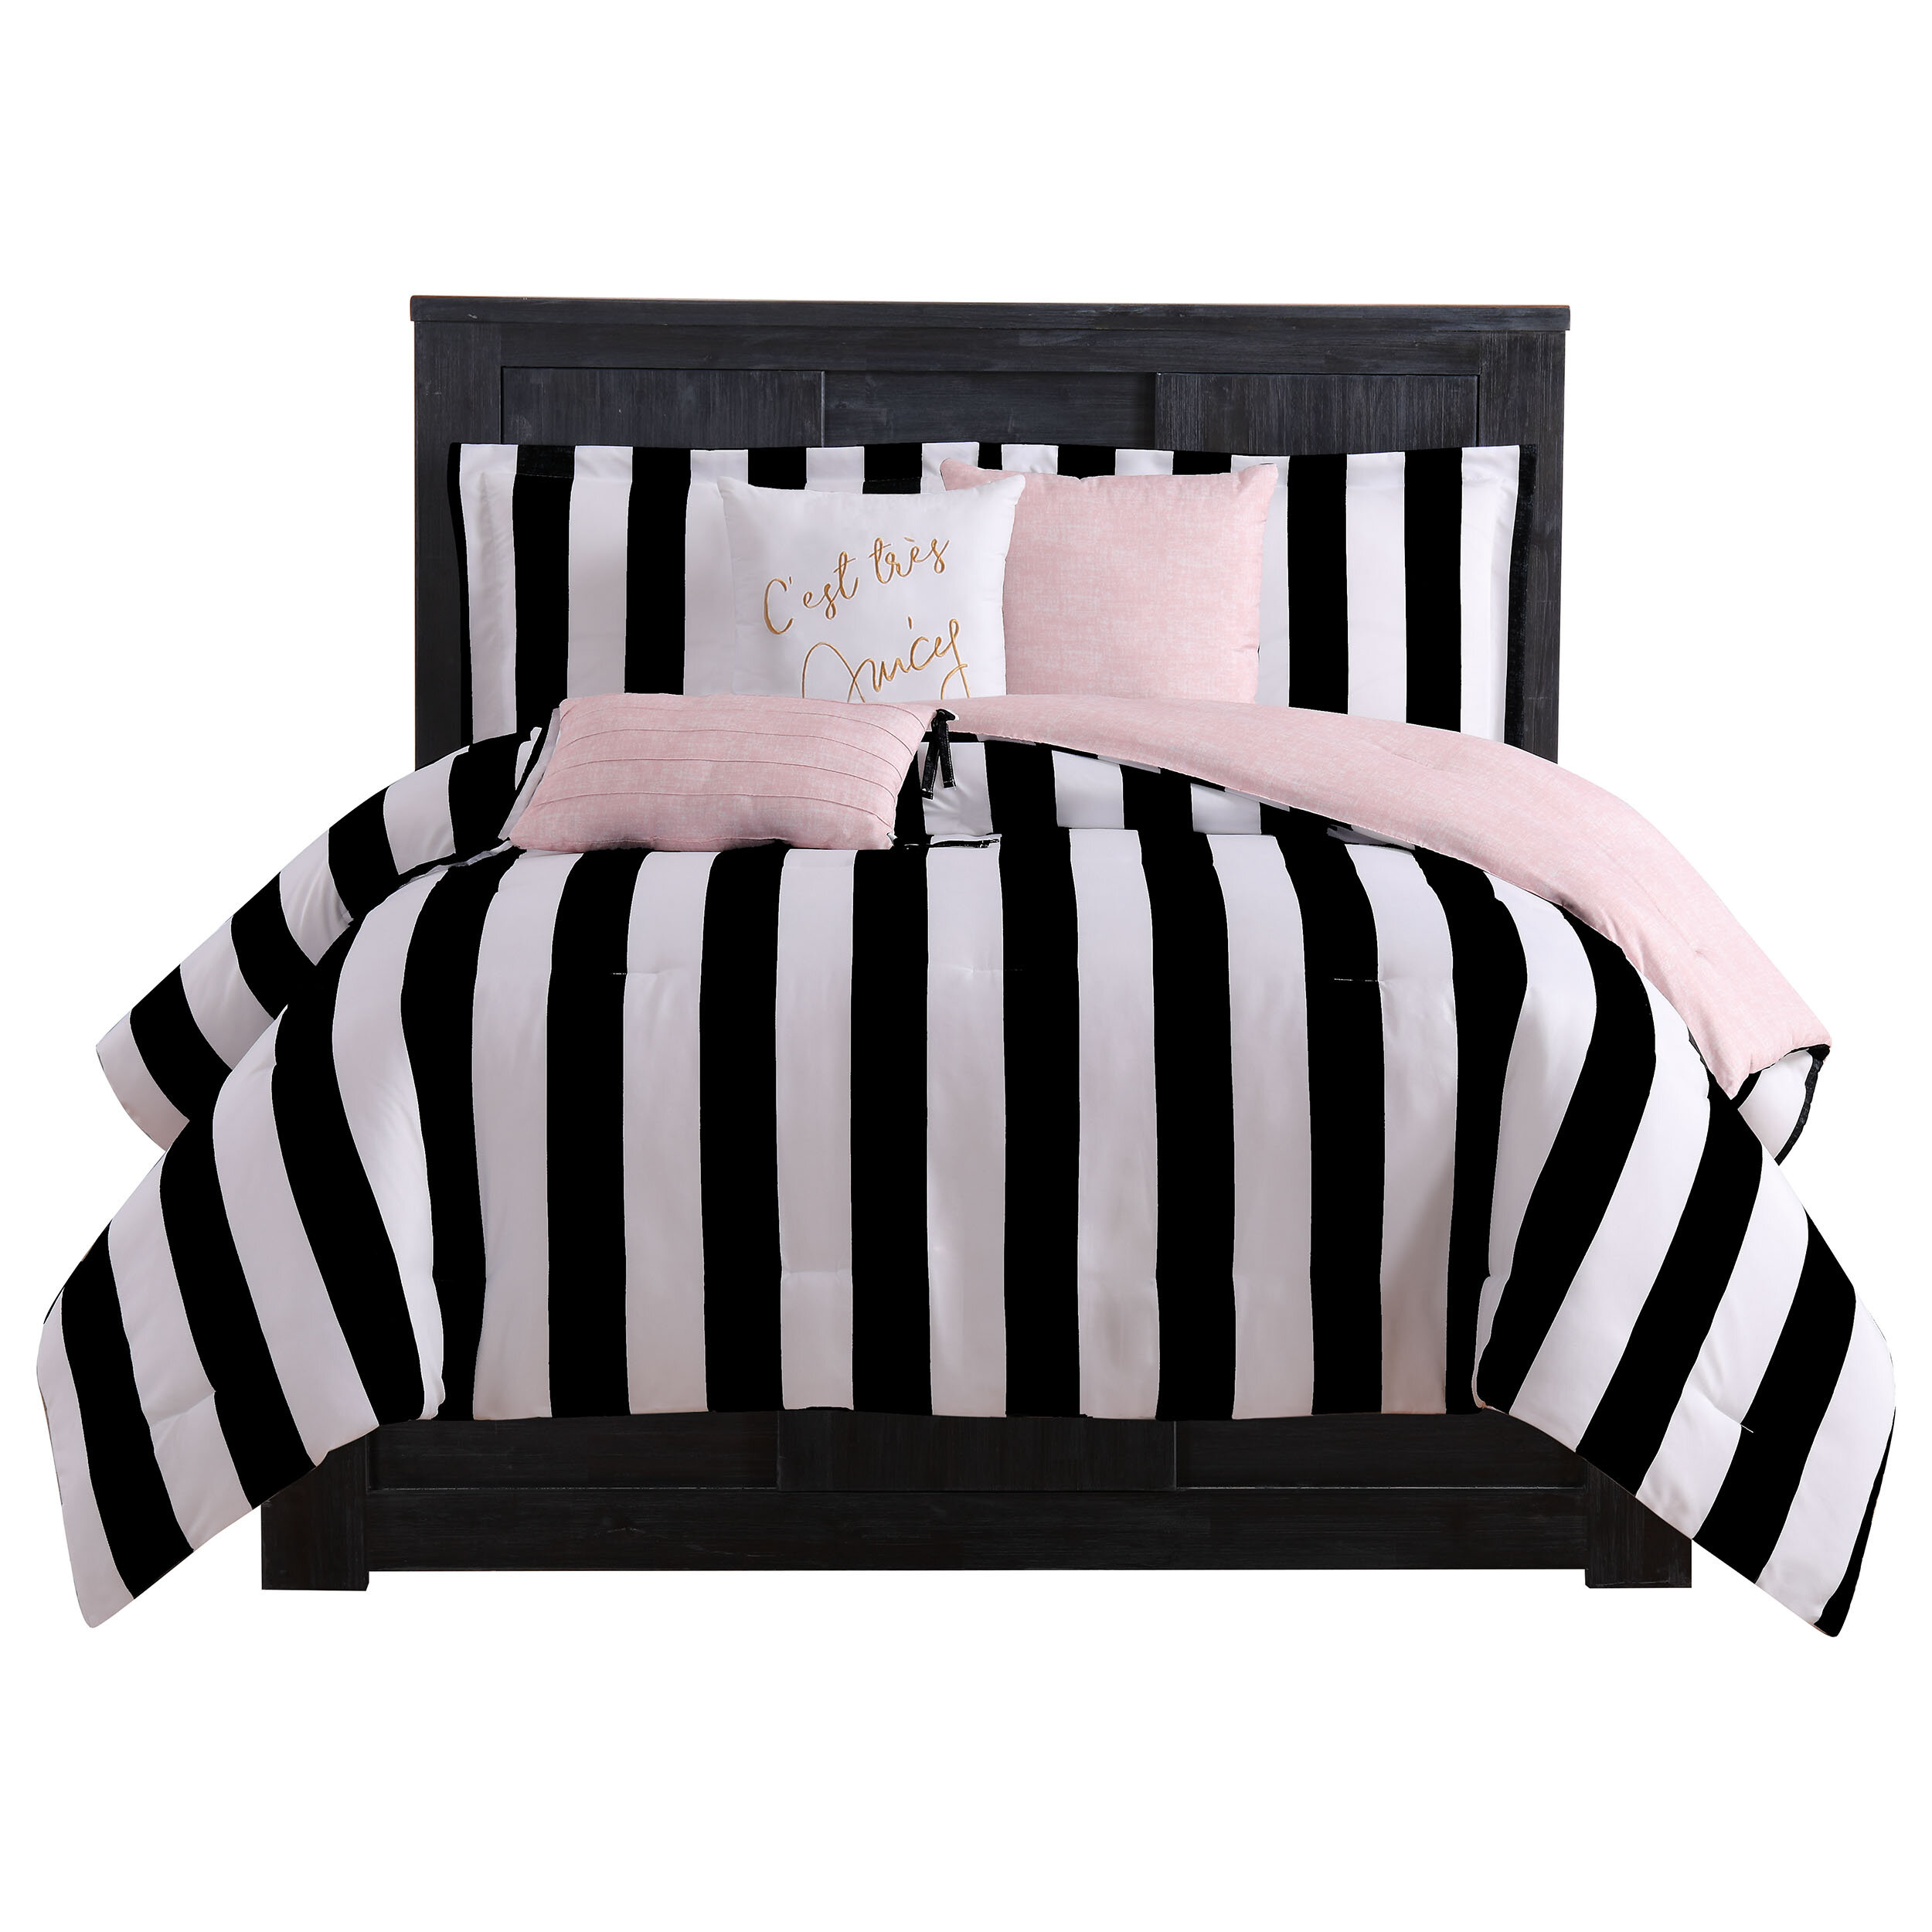 Black And White Comforter Set Cheaper Than Retail Price Buy Clothing Accessories And Lifestyle Products For Women Men